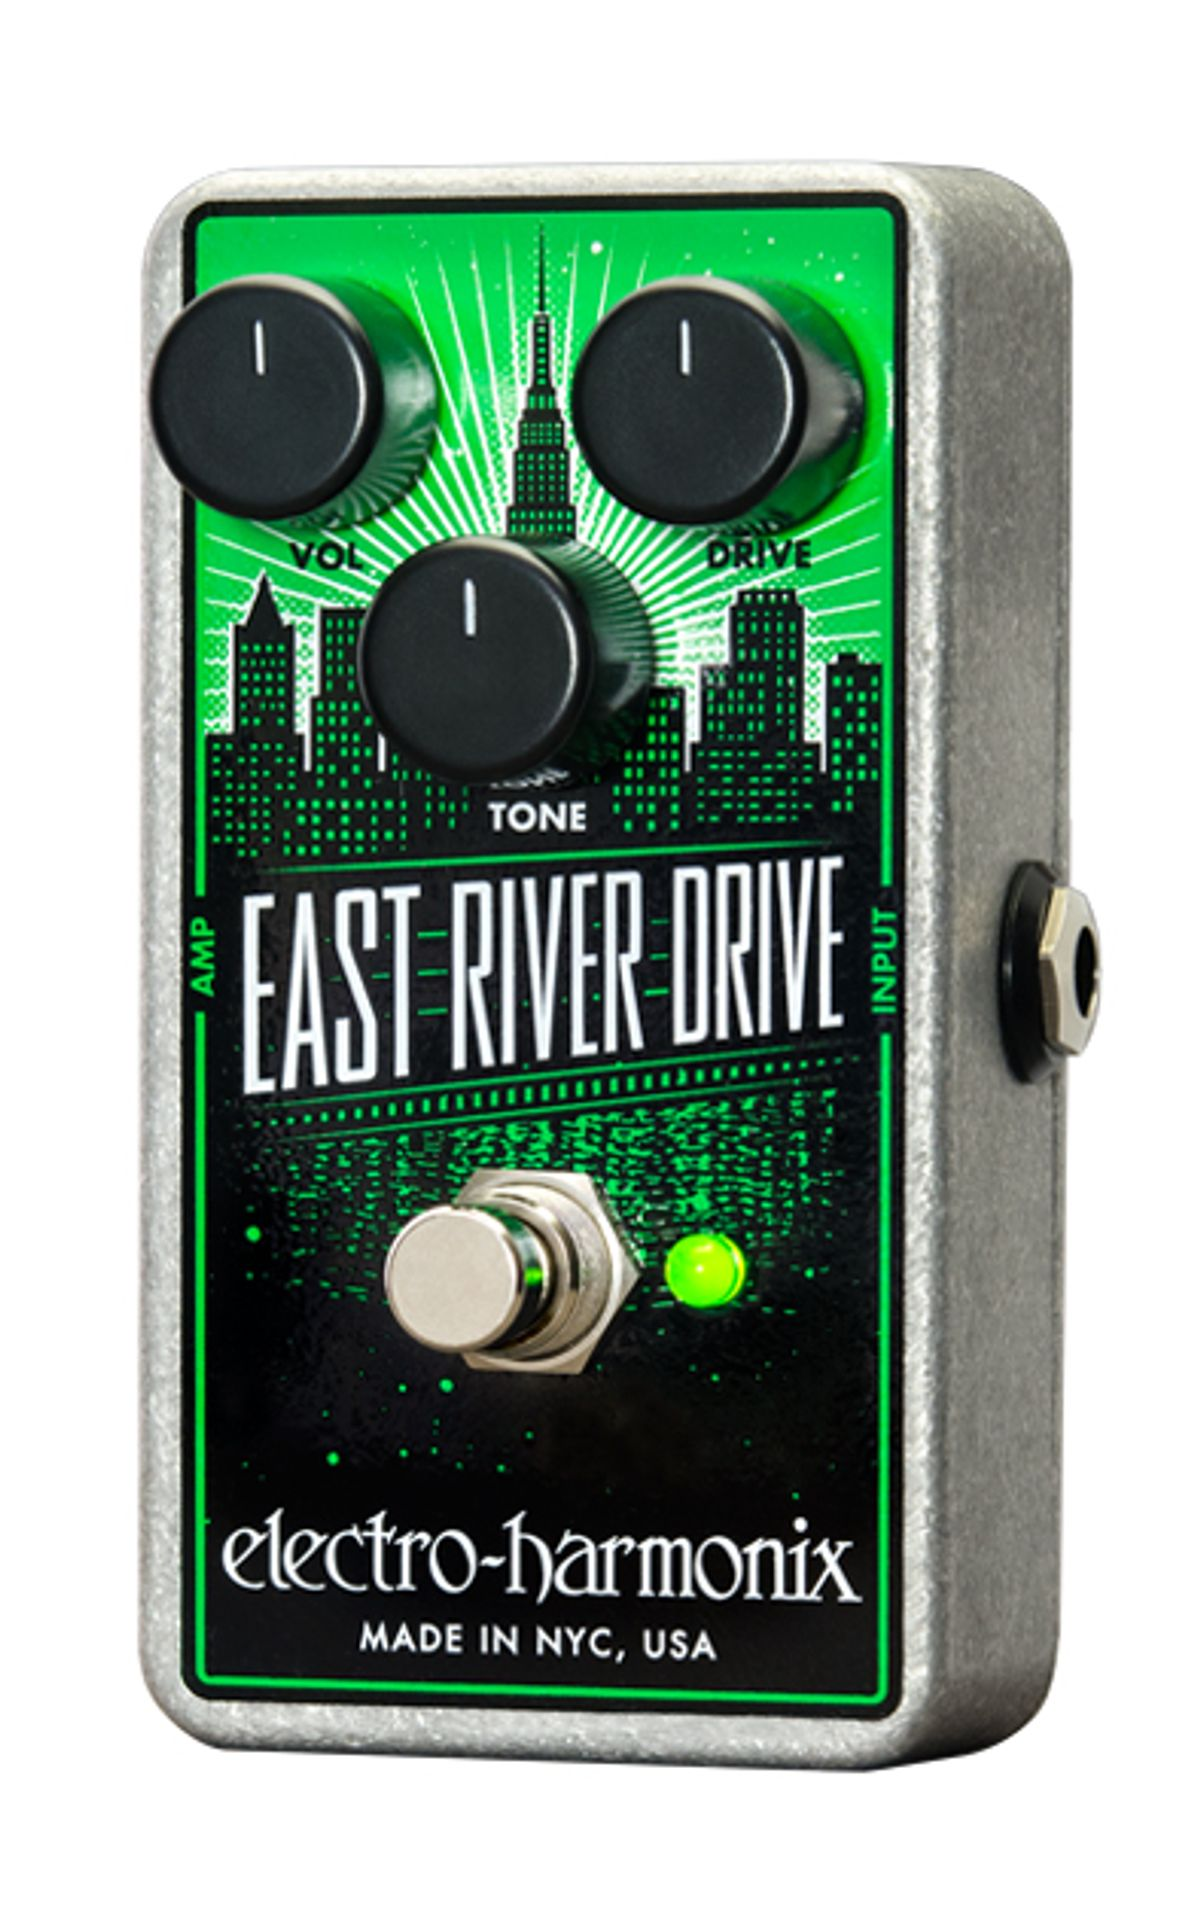 Electro-Harmonix Releases the East River Drive